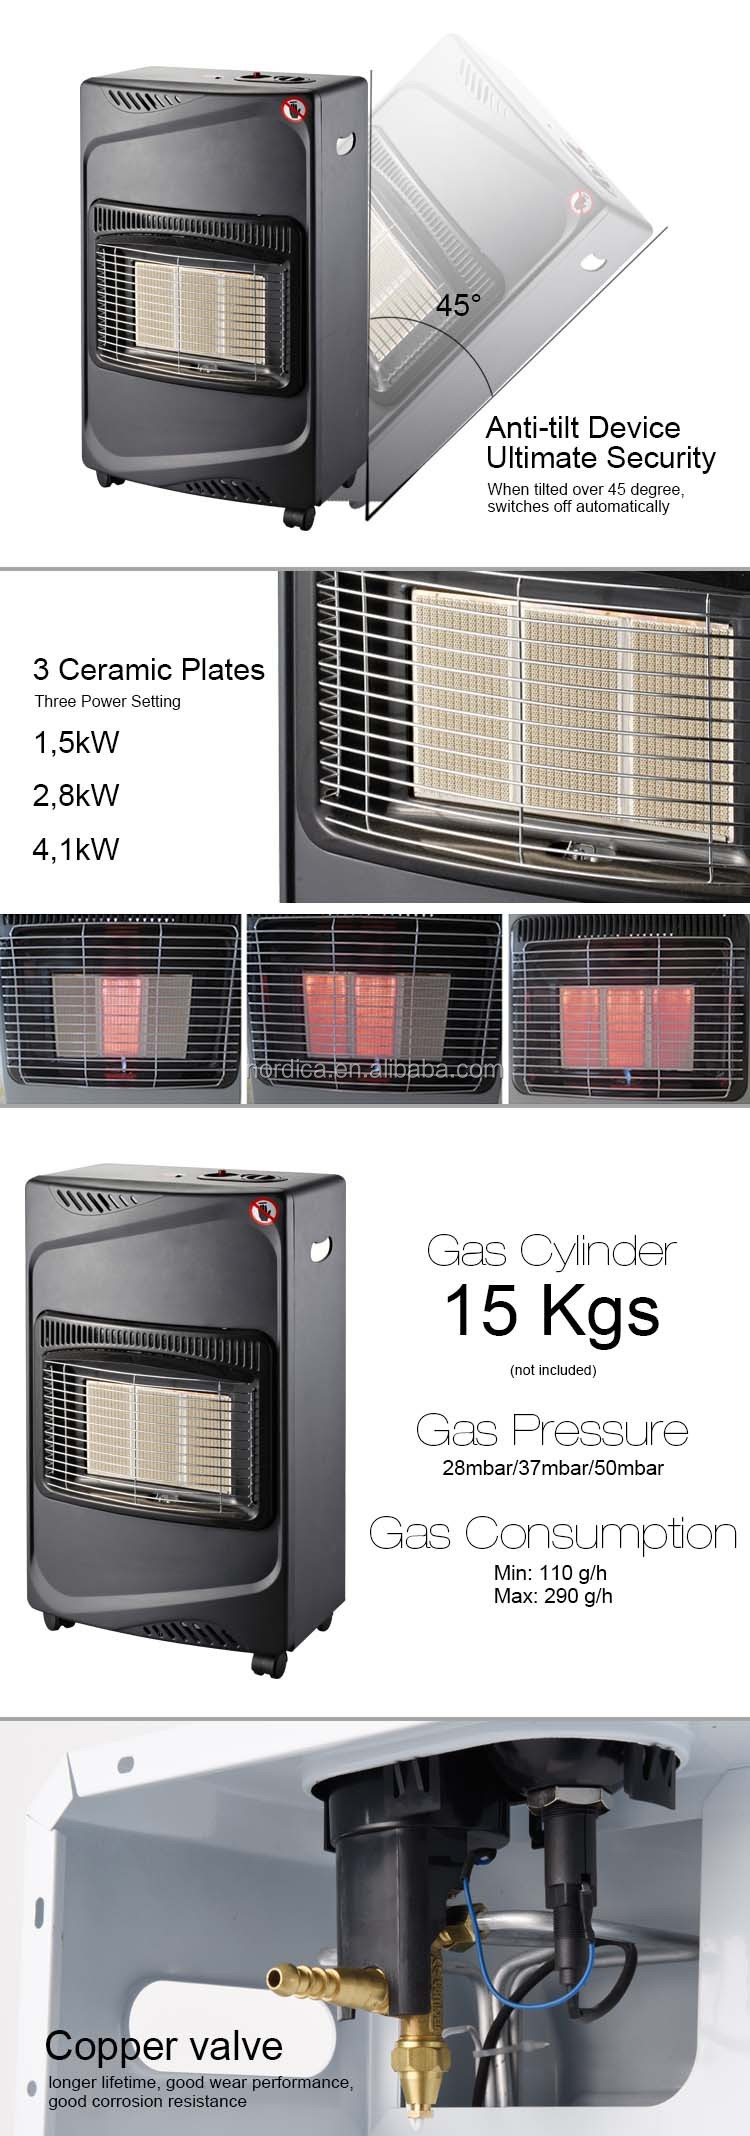 Made In China Room Heater Mobile Home Indoor Non Electric ... on Indoor Non Electric Heaters id=46291